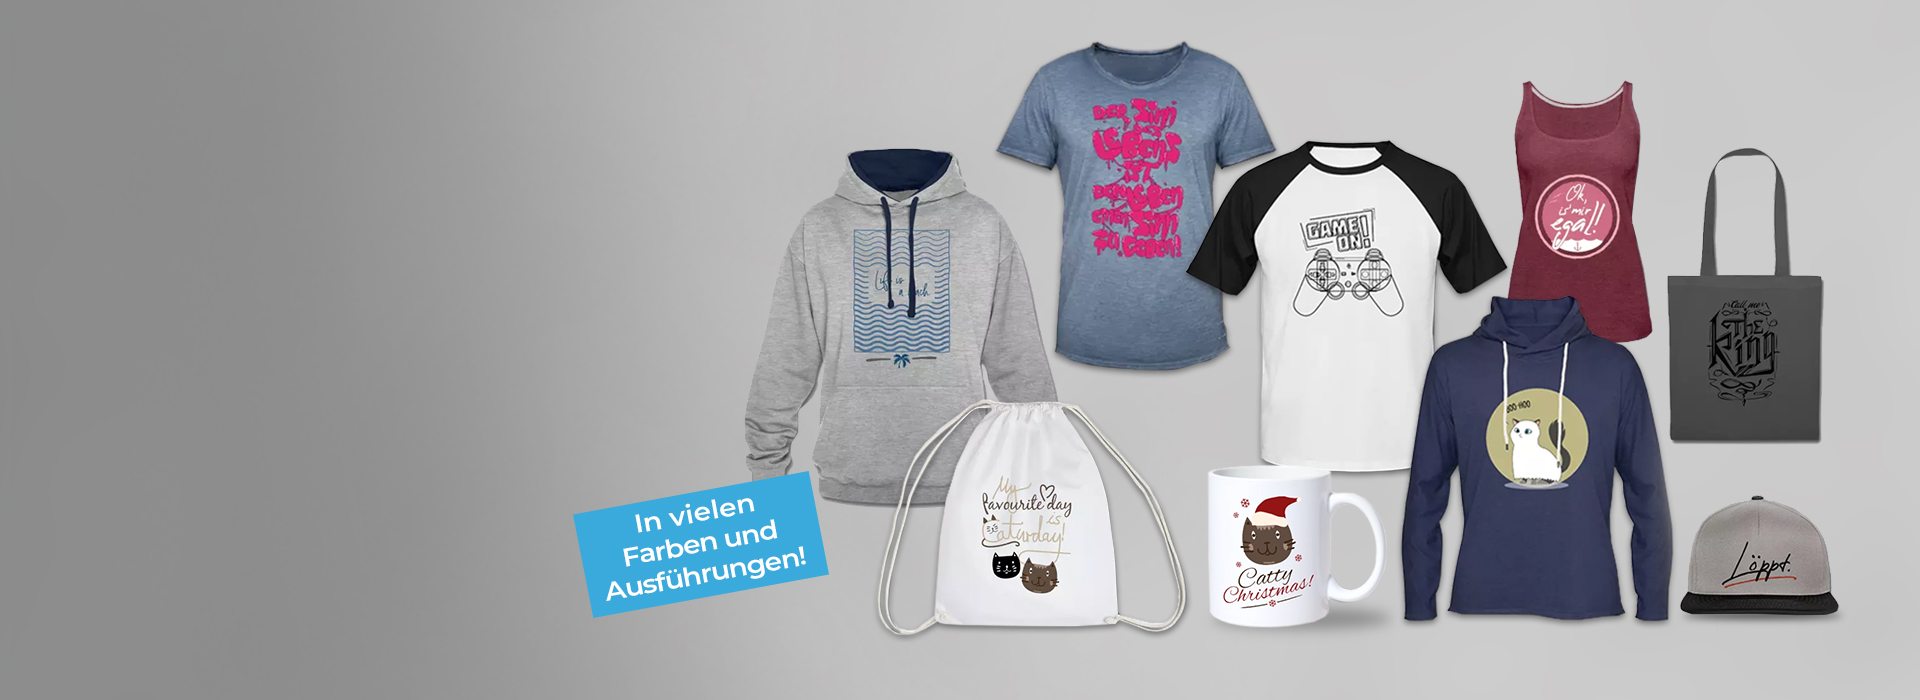 header-spreadshirt-kleidung